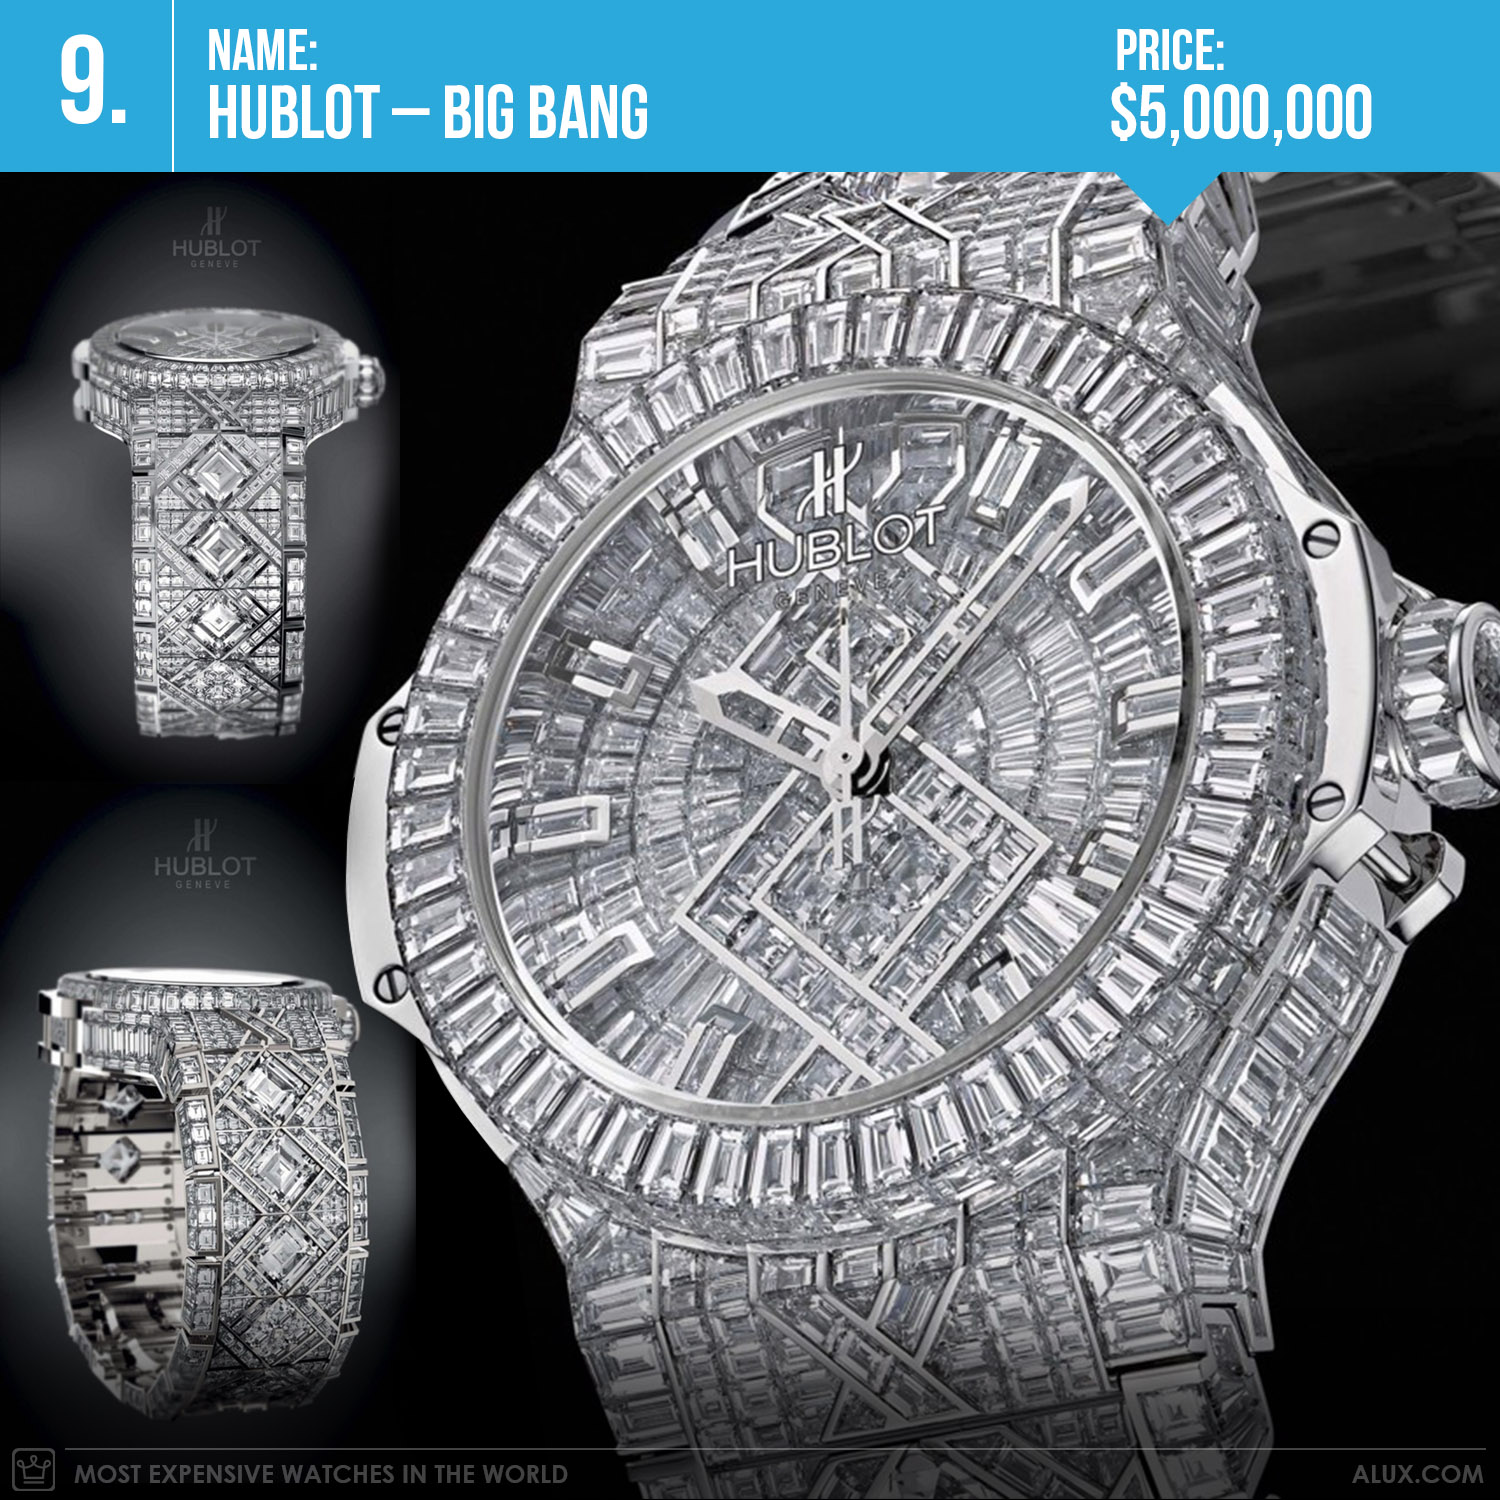 Most expensive watches in the world 2017 hublot big bang diamond watch ...